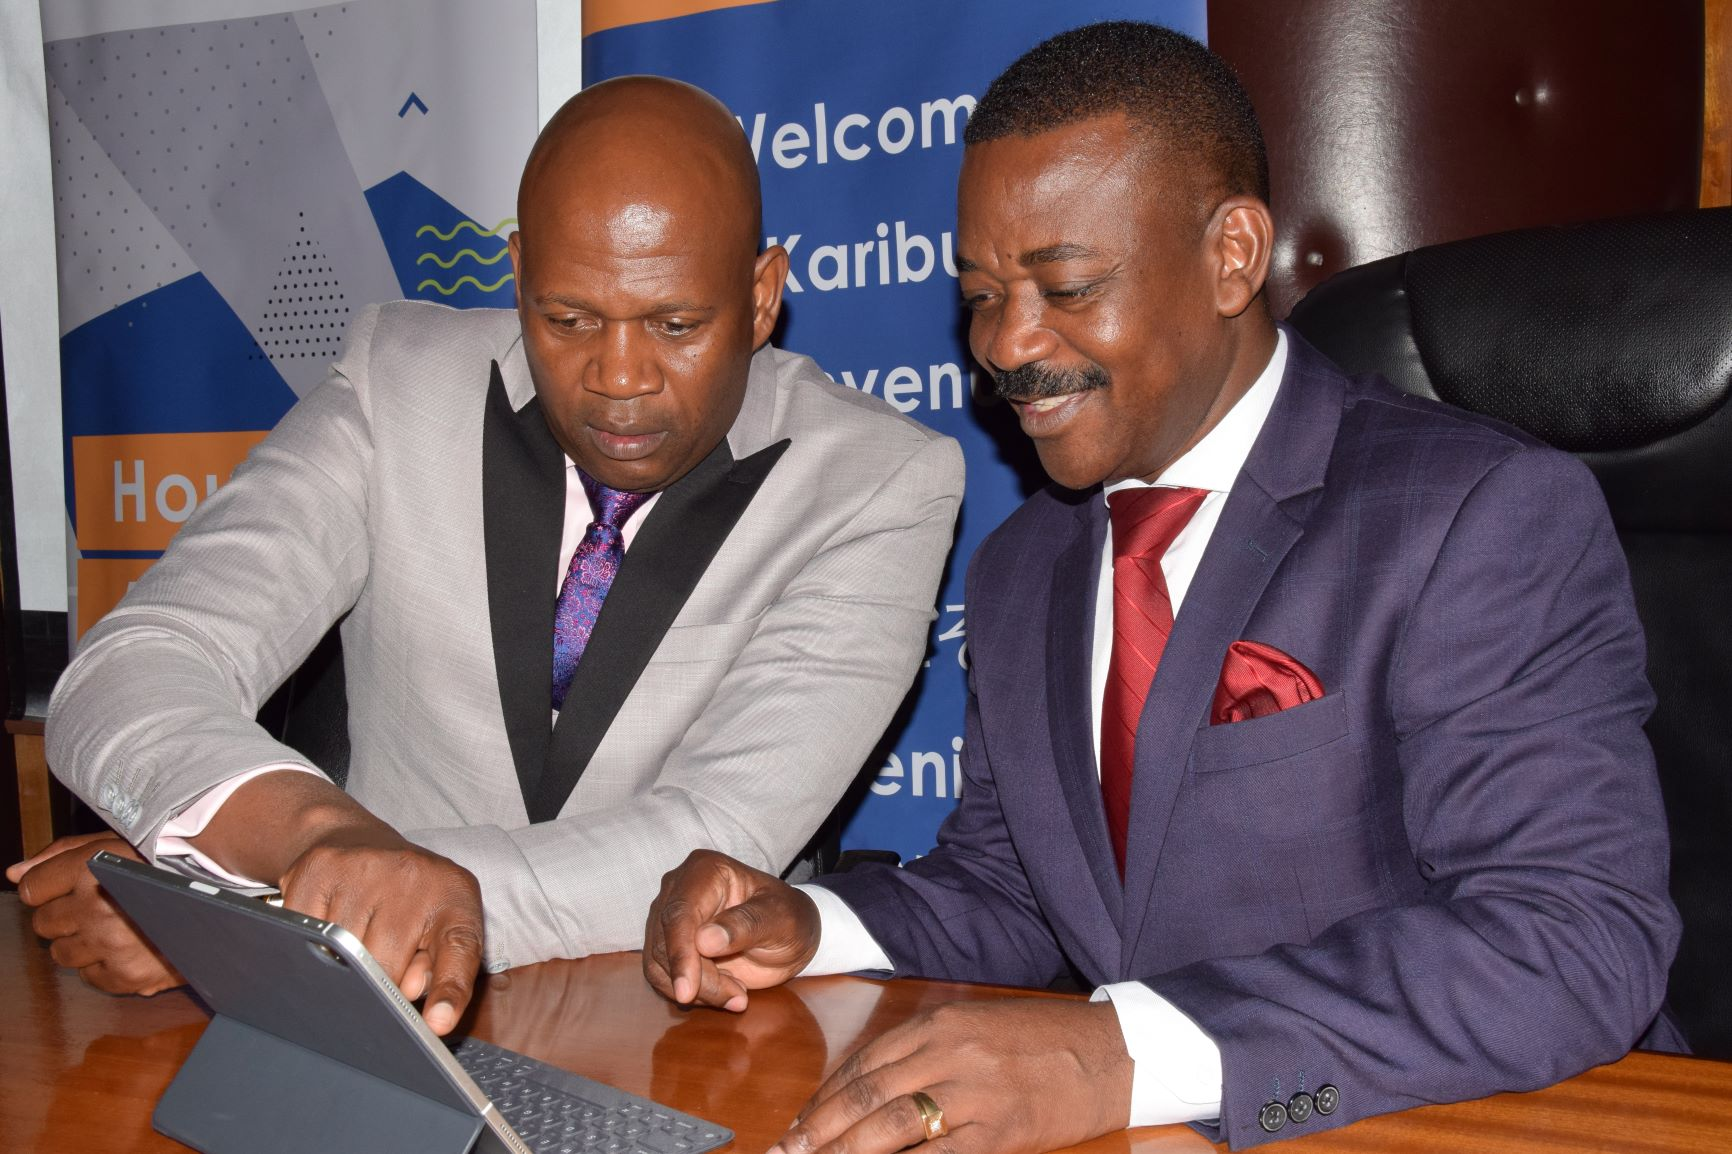 Shelter Afrique Managing Director Andrew Chimphondah (left) explains financials results to Shelter Afrique Chairman Nghidinua Daniel when the Company released its 2019 half year result last month.